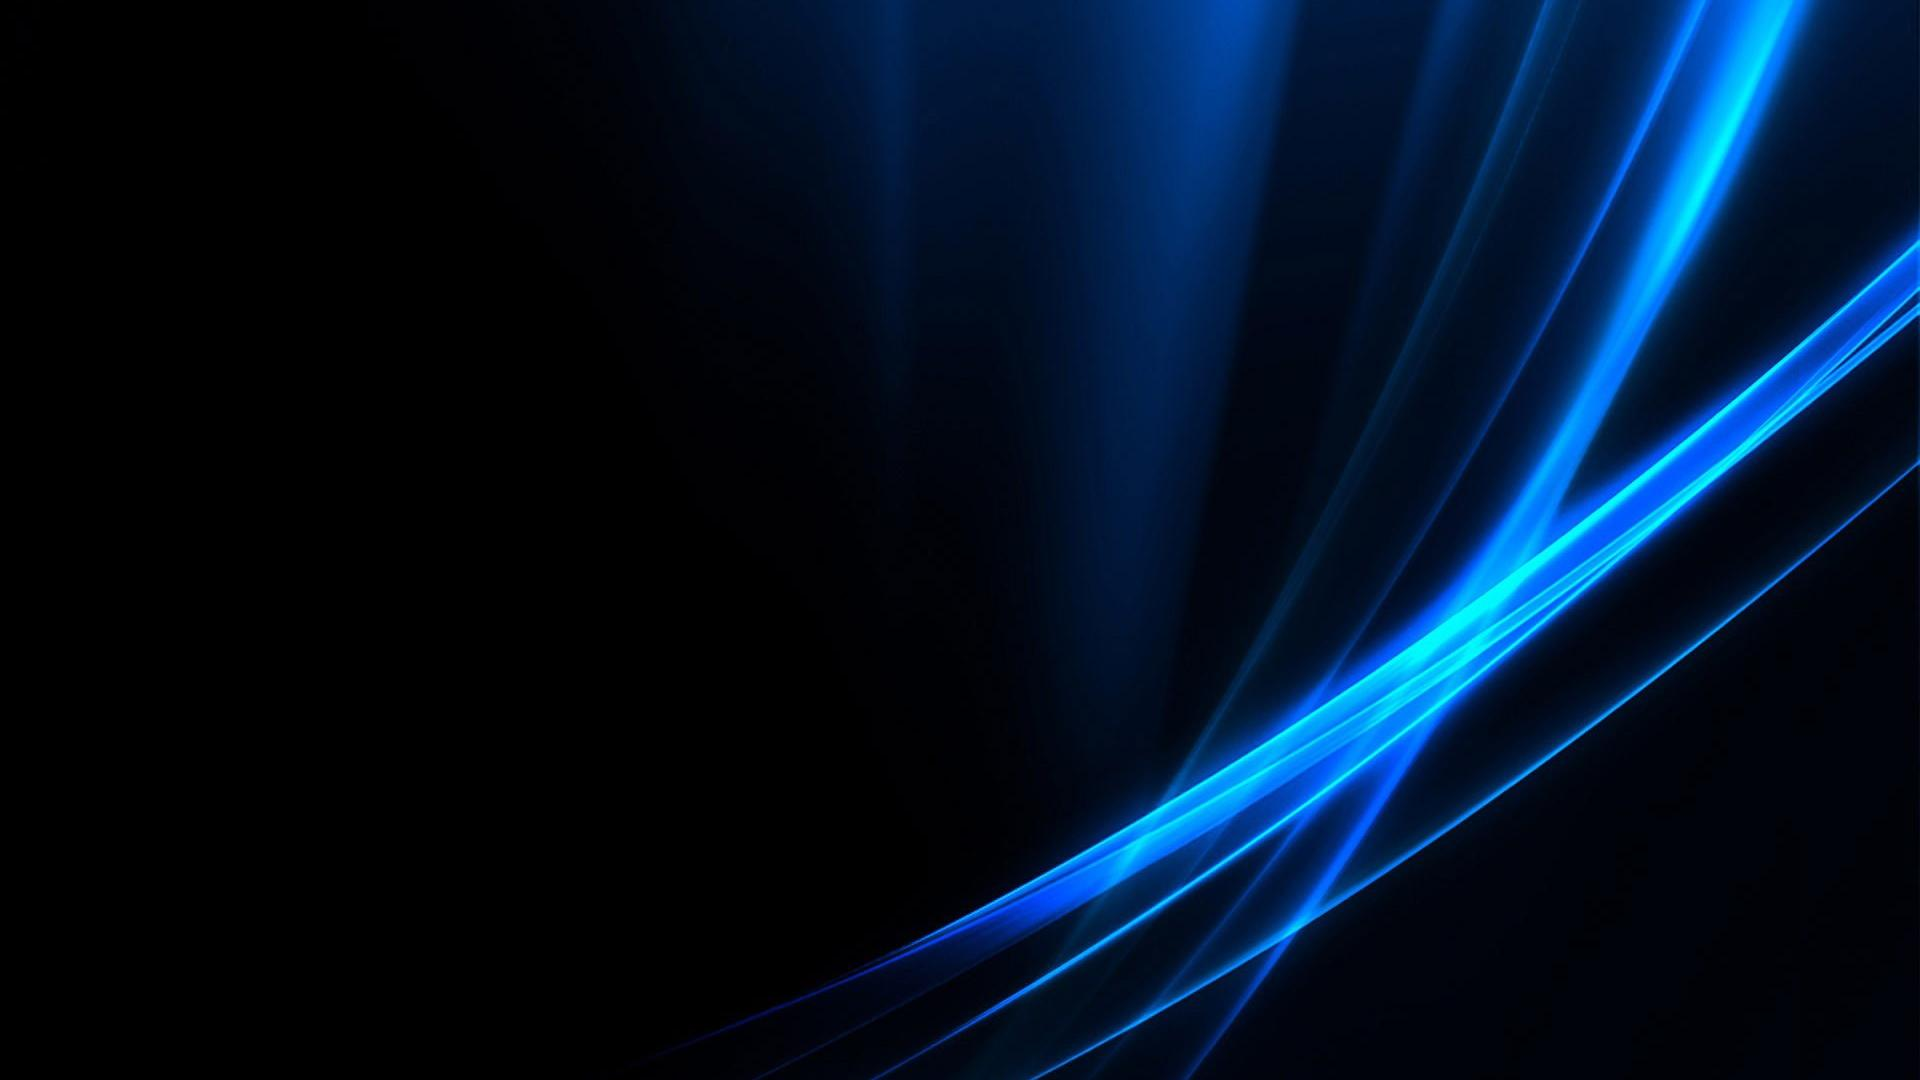 Blue Wallpaper 1920x1080 Wallpapers HD 1080p Desktop